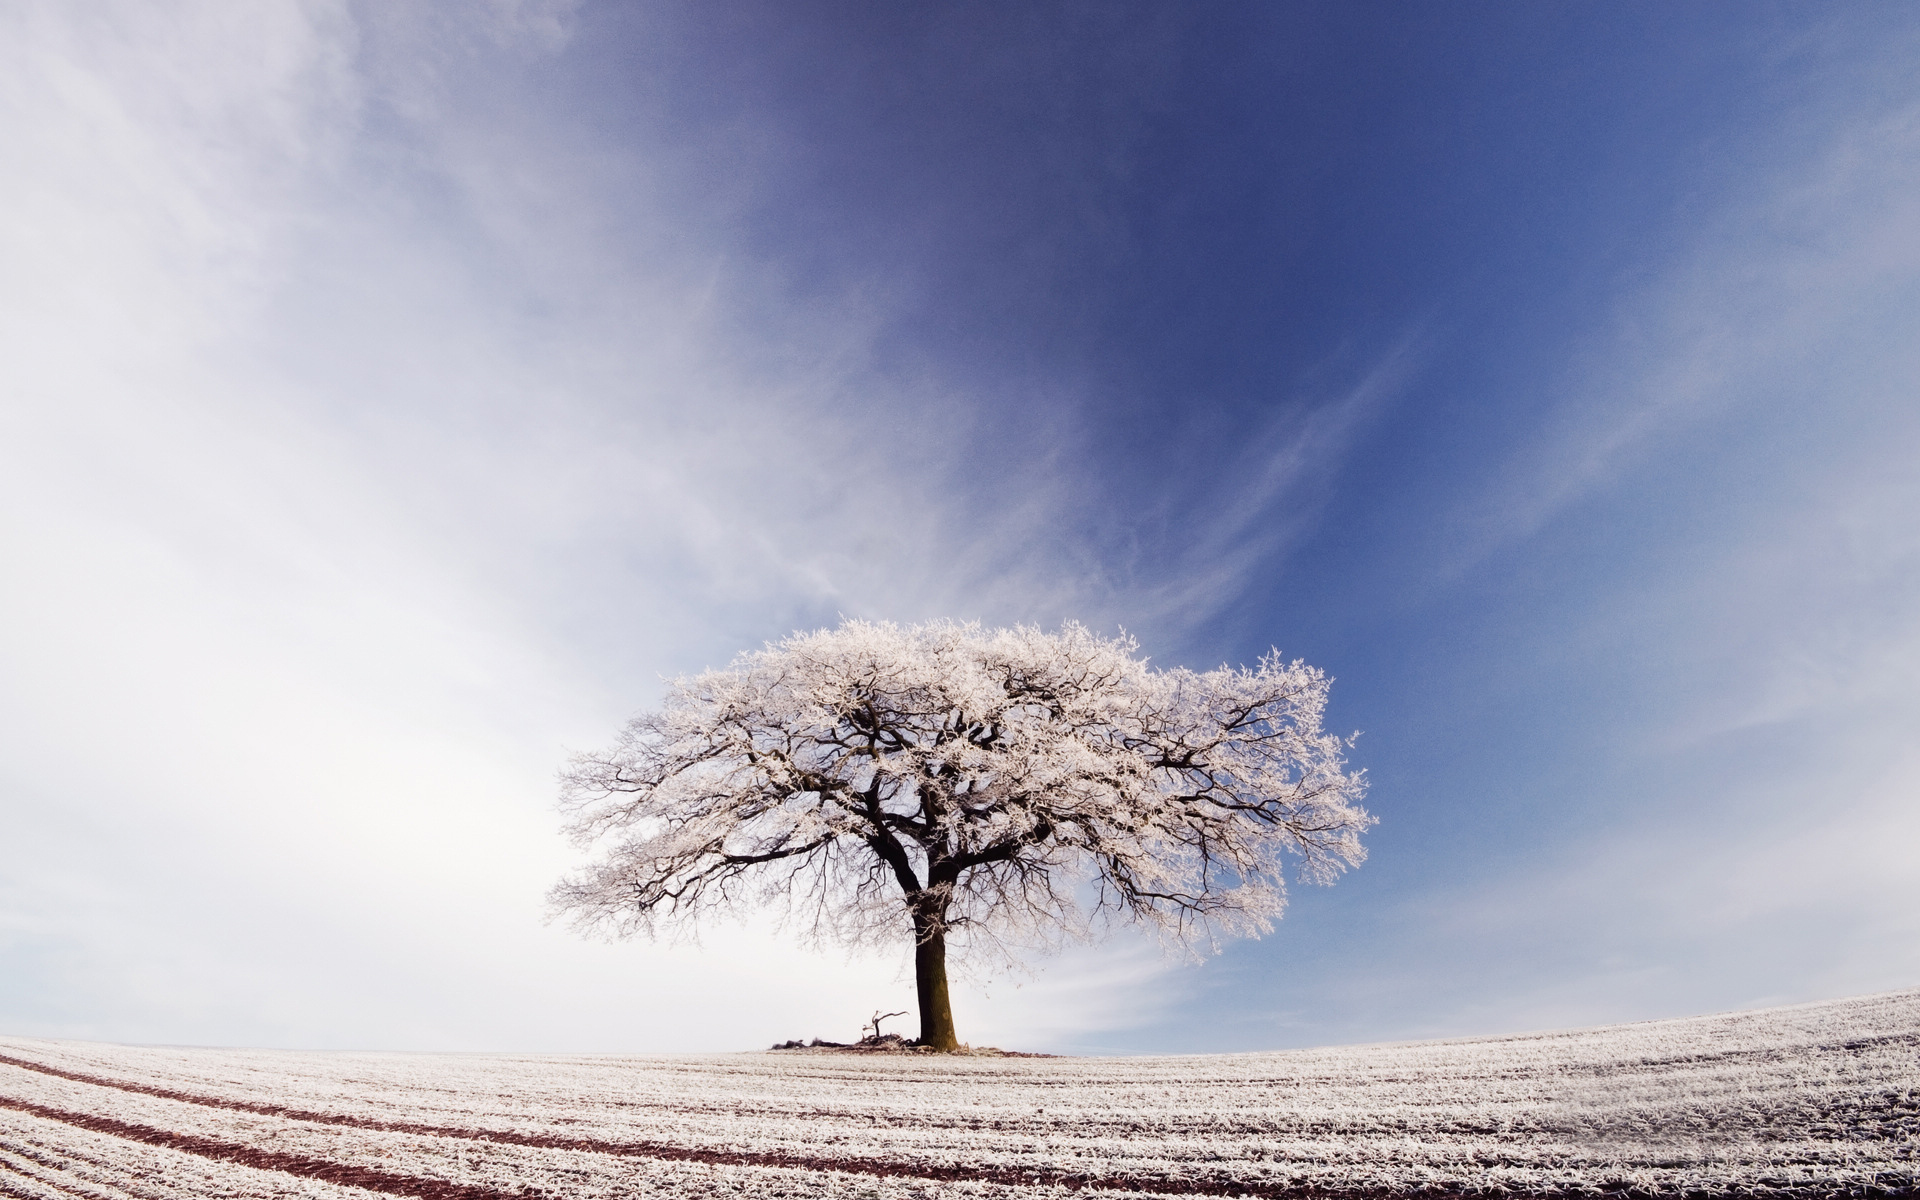 Falling Snow Wallpaper For Ipad Tree Standing Alone In The Snowy World Its Branches All